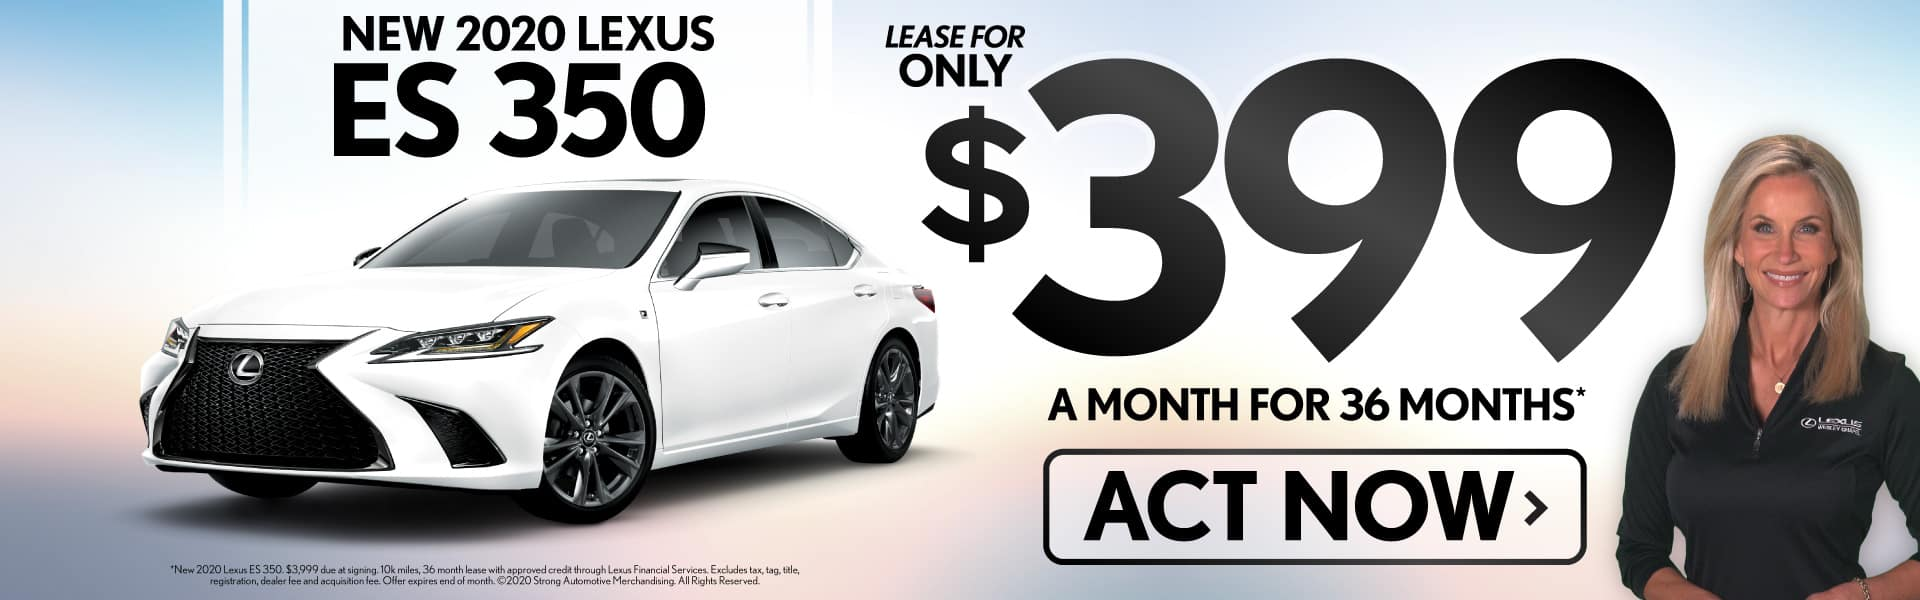 New 2020 Lexus ES 350 lease for only $399/mo - ACT NOW